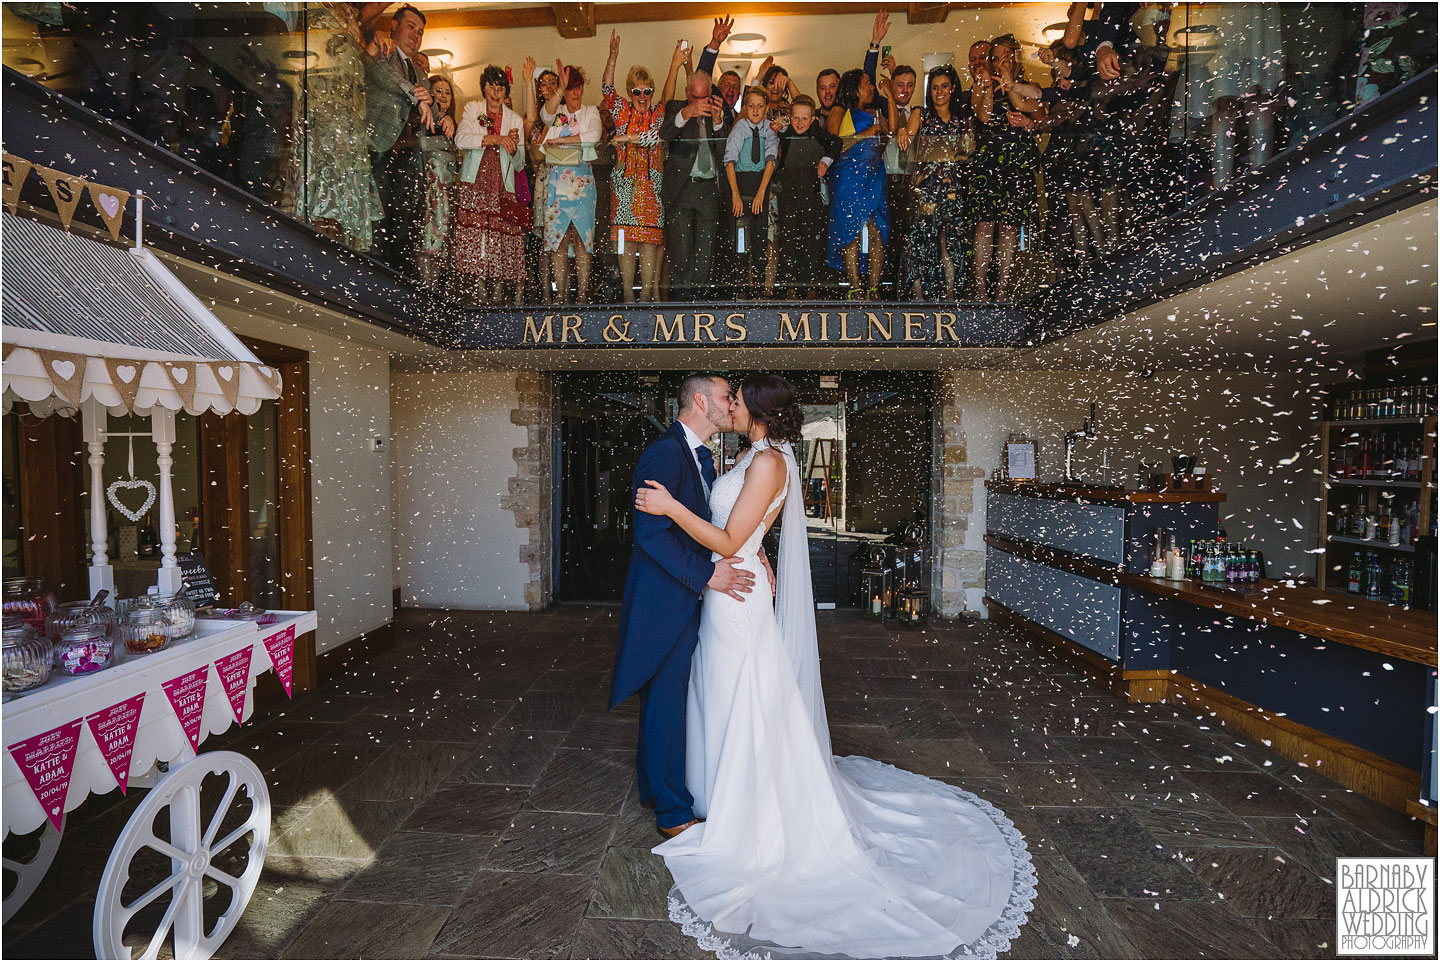 Confetti photograph at Priory Cottages Wedding Barn in Syningthwaite Priory, Wedding photography at St Peter's Church Walton near Wetherby, Priory Cottages Barn Wedding Venue Photos, Yorkshire Barn Venue Photos